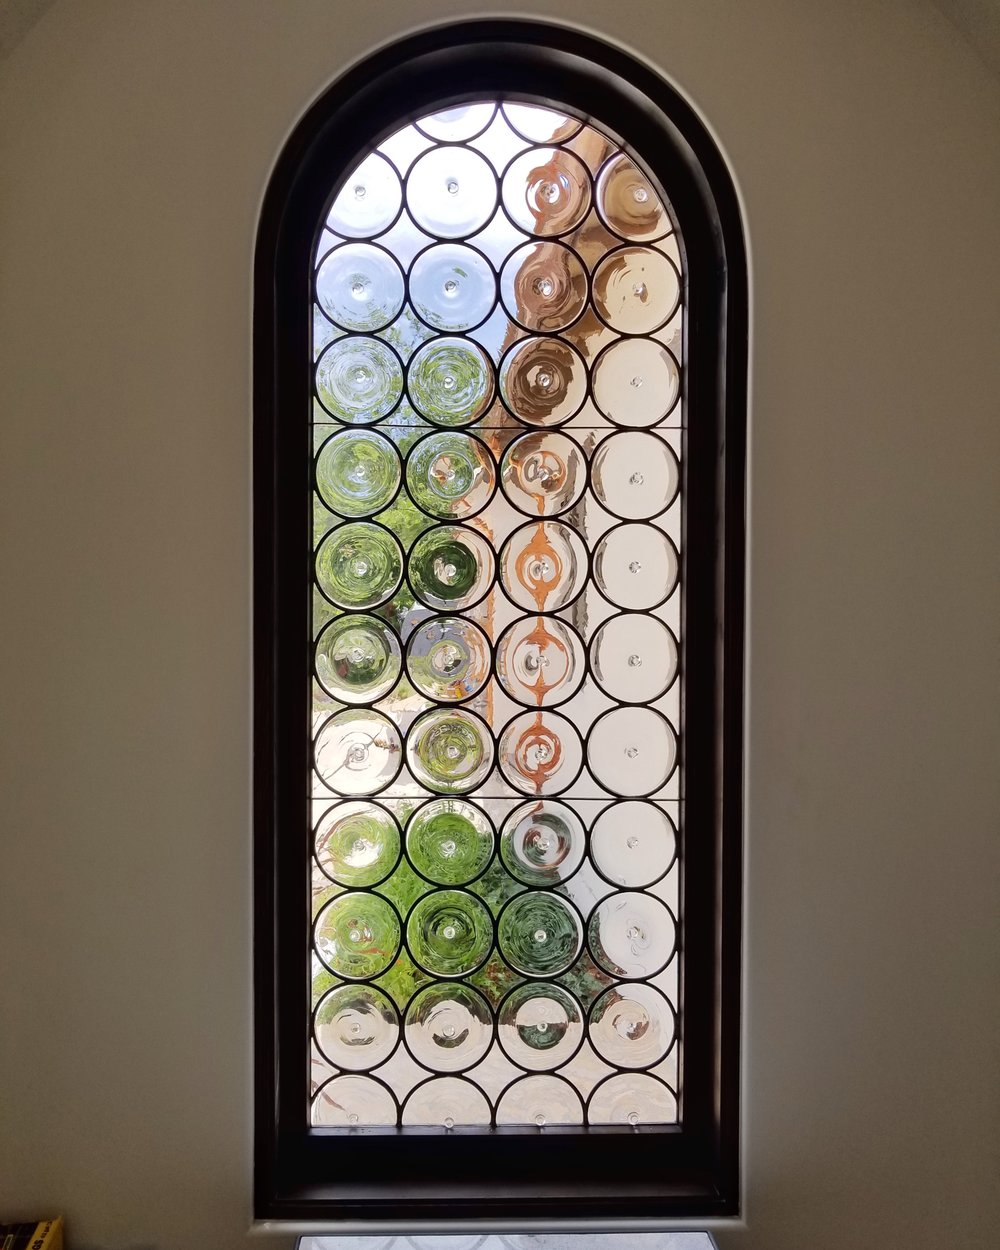 custom stained glass leaded glass rondel design legacy glass studios menlo park bay area california custom design installed tuscan home diffused.jpg